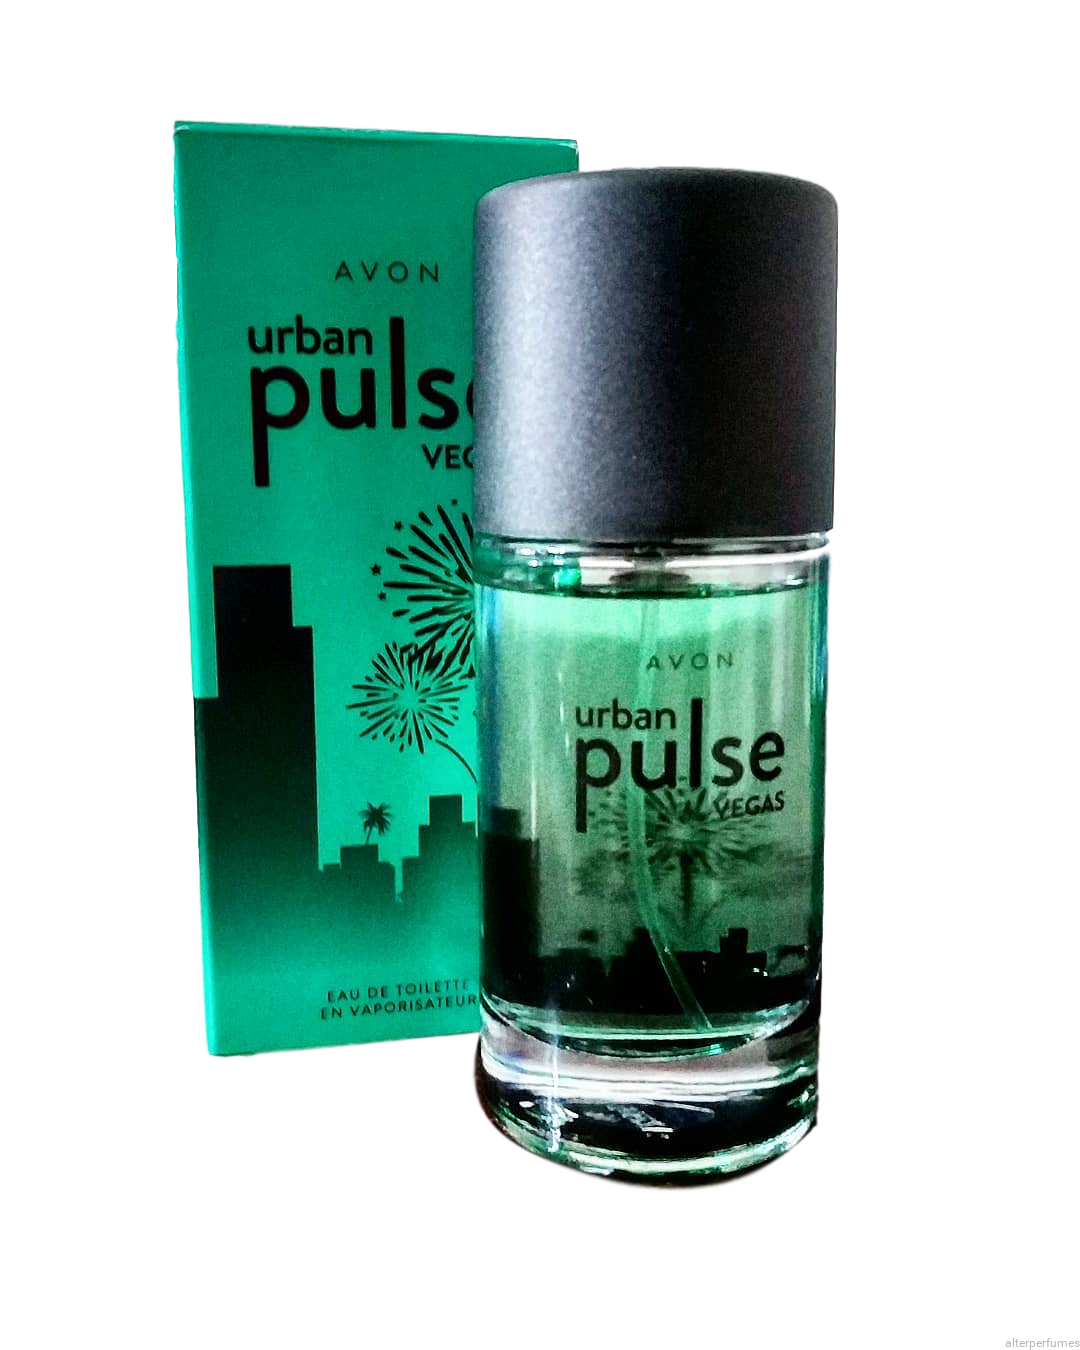 Avon Urban Pulse Vegas Mens Cologne 50ml Alter Perfumes